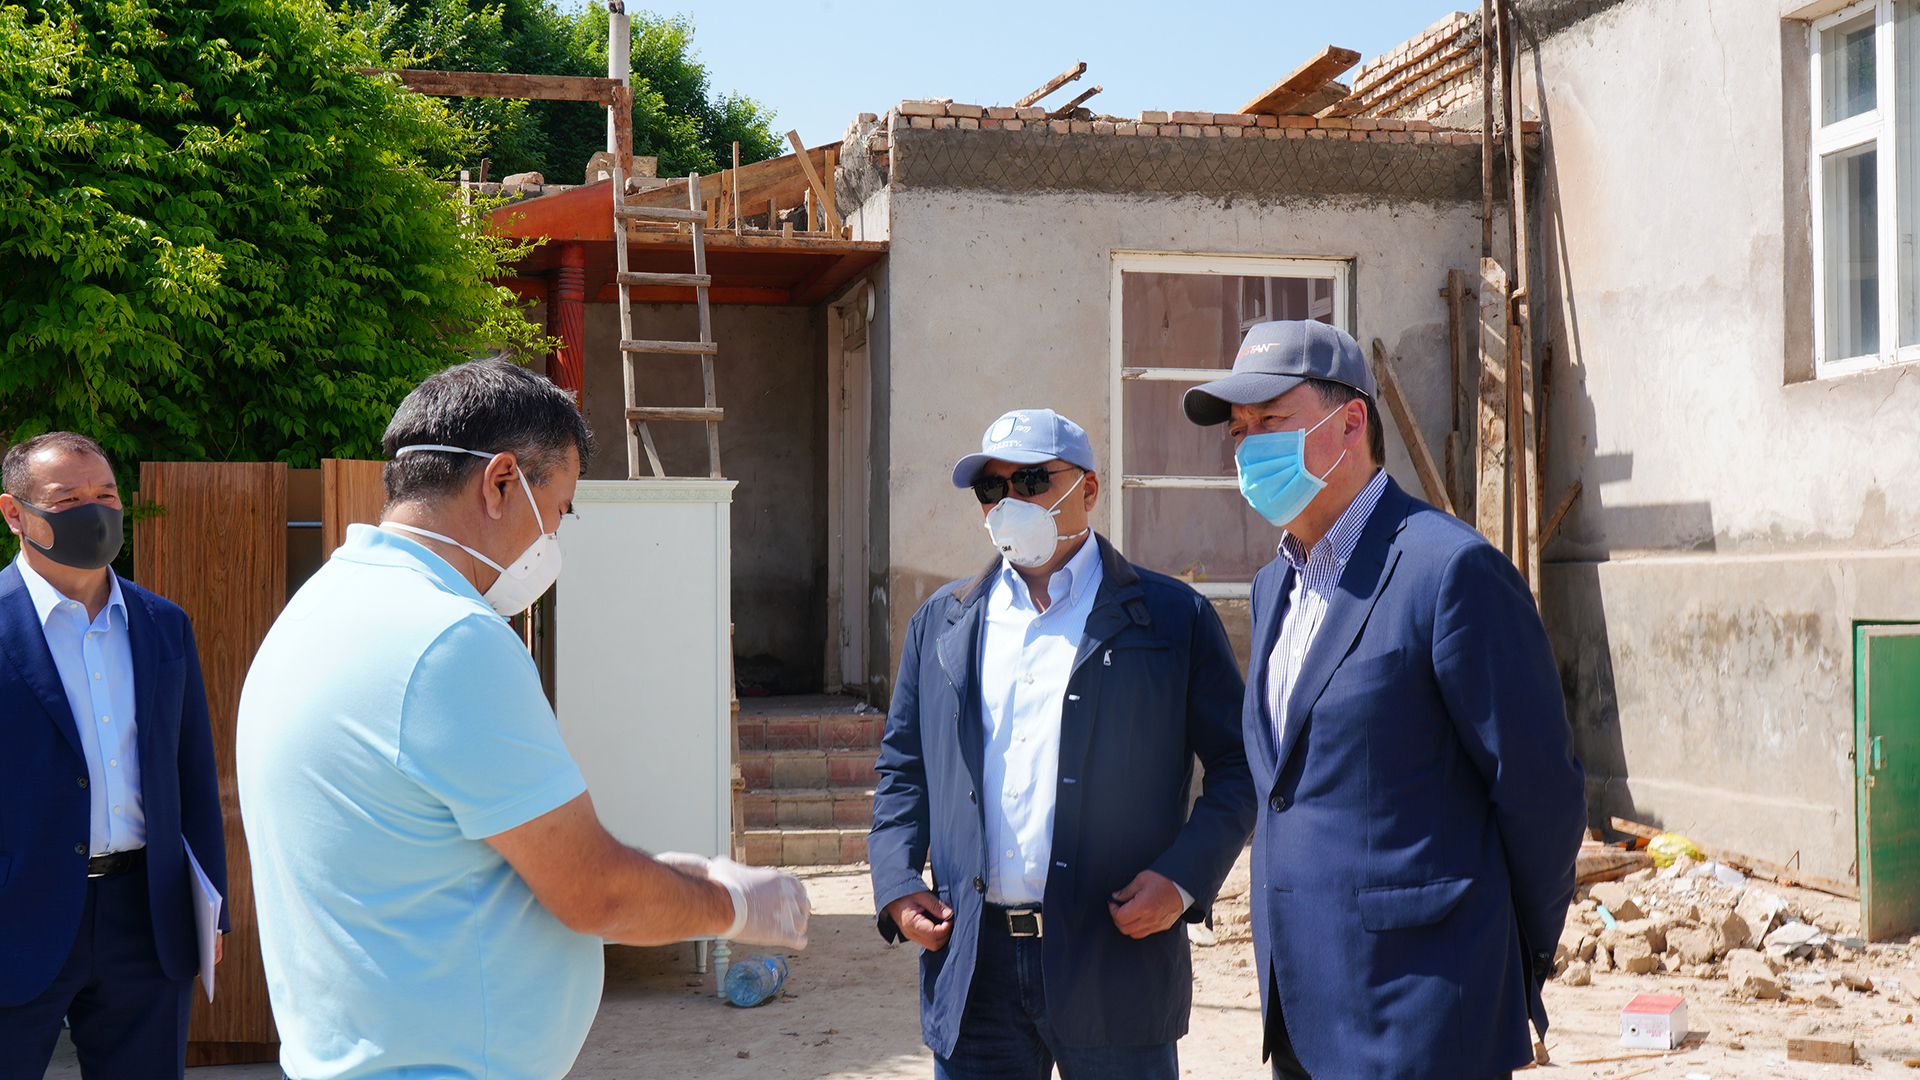 PRIME MINISTER OF THE REPUBLIC OF KAZAKHSTAN A. MAMIN INSPECTED RESTORATION WORKS IN THE MAKTAARAL DISTRICT OF THE TURKESTAN REGION